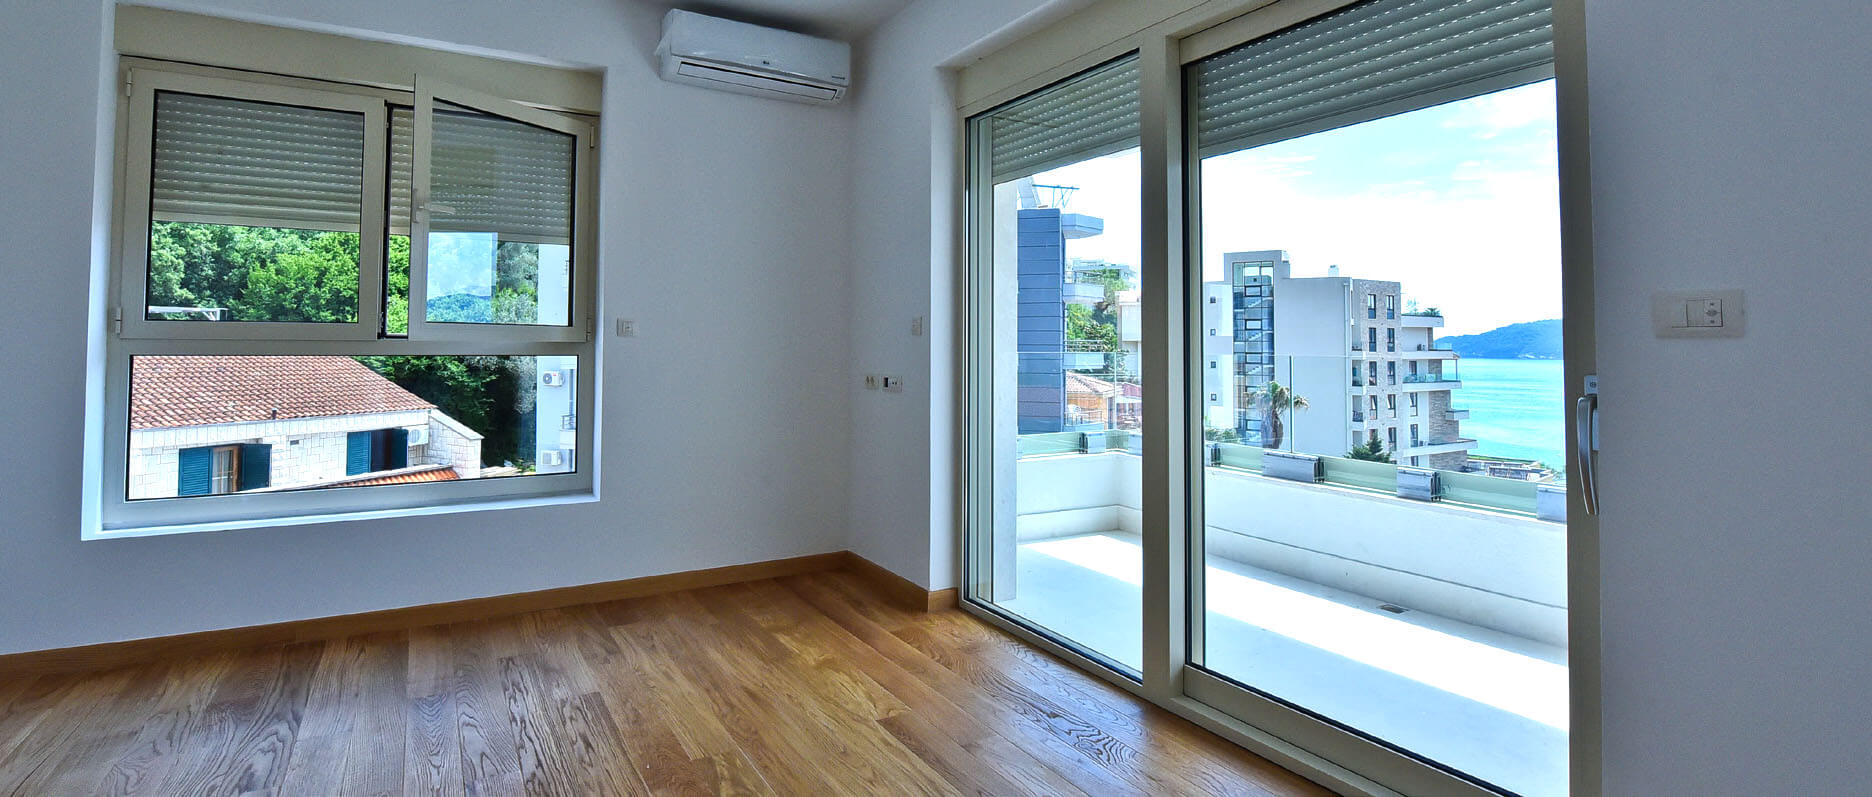 Budva, Rafailovići – new one bedroom apartment 44m2, with sea view